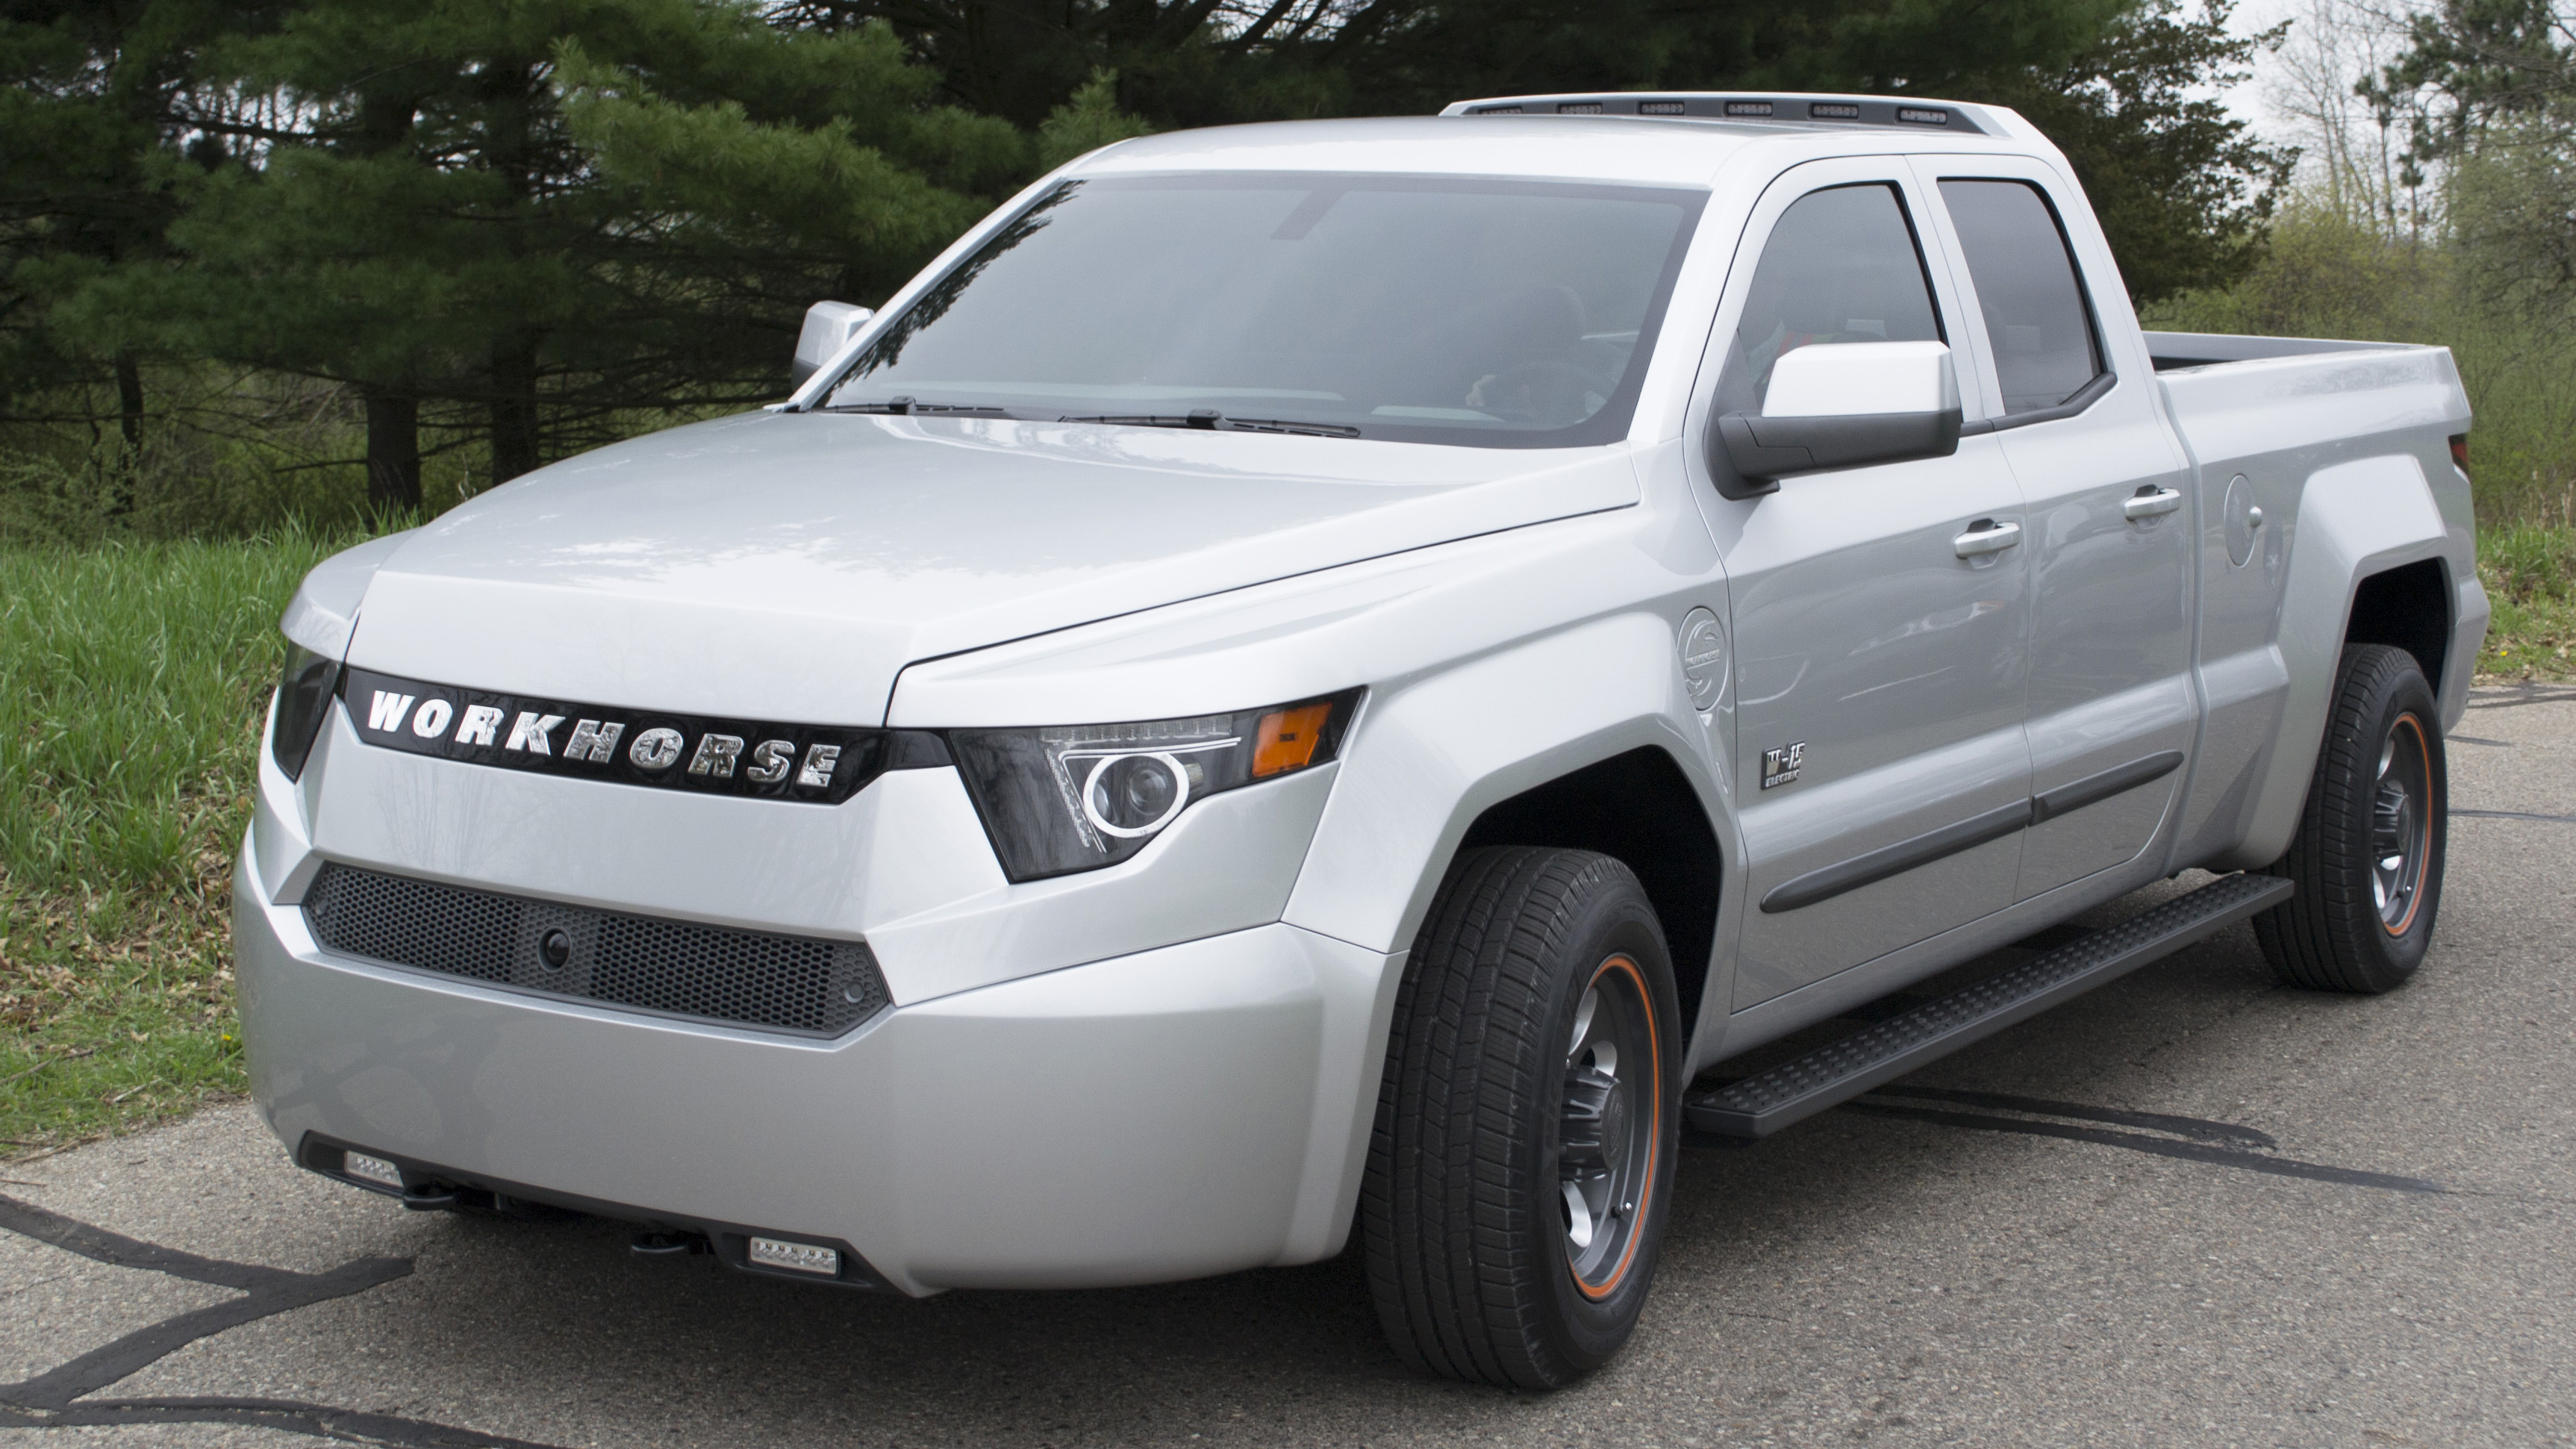 Workhorse W-15 revealed: PHEV pickup with 80-mile range thumbnail